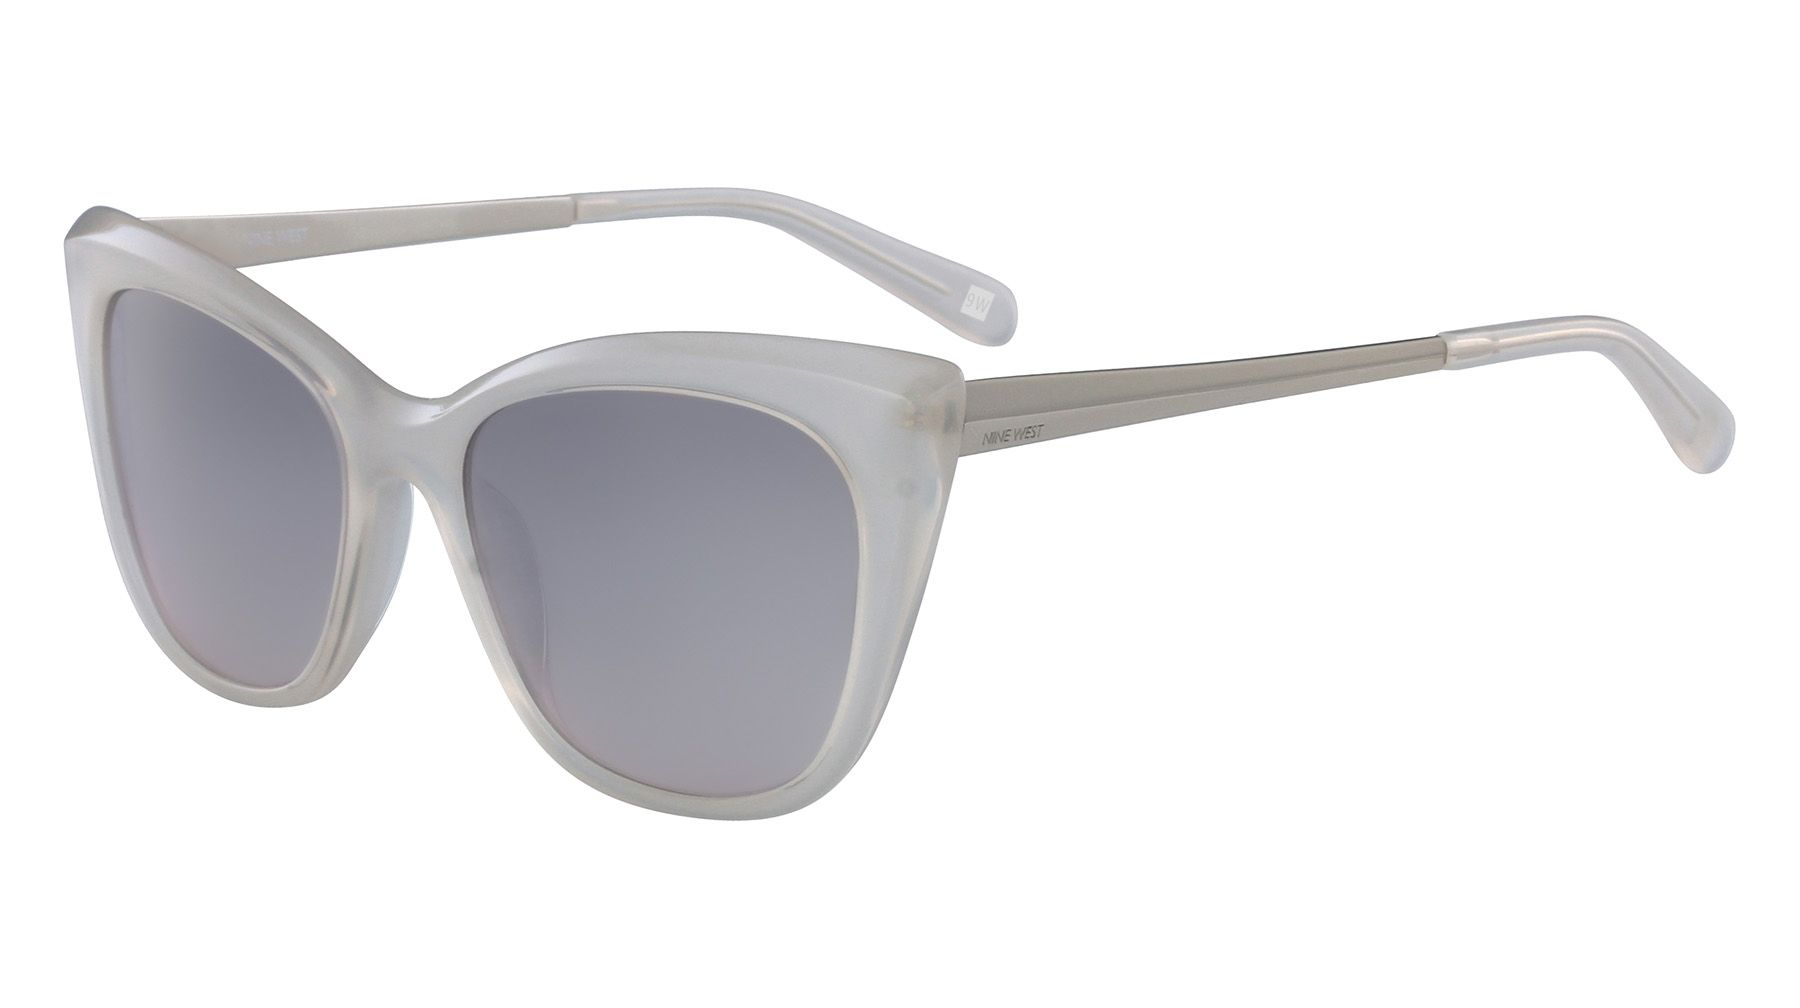 cce1b9d4e4c8 Nine West Sunglasses